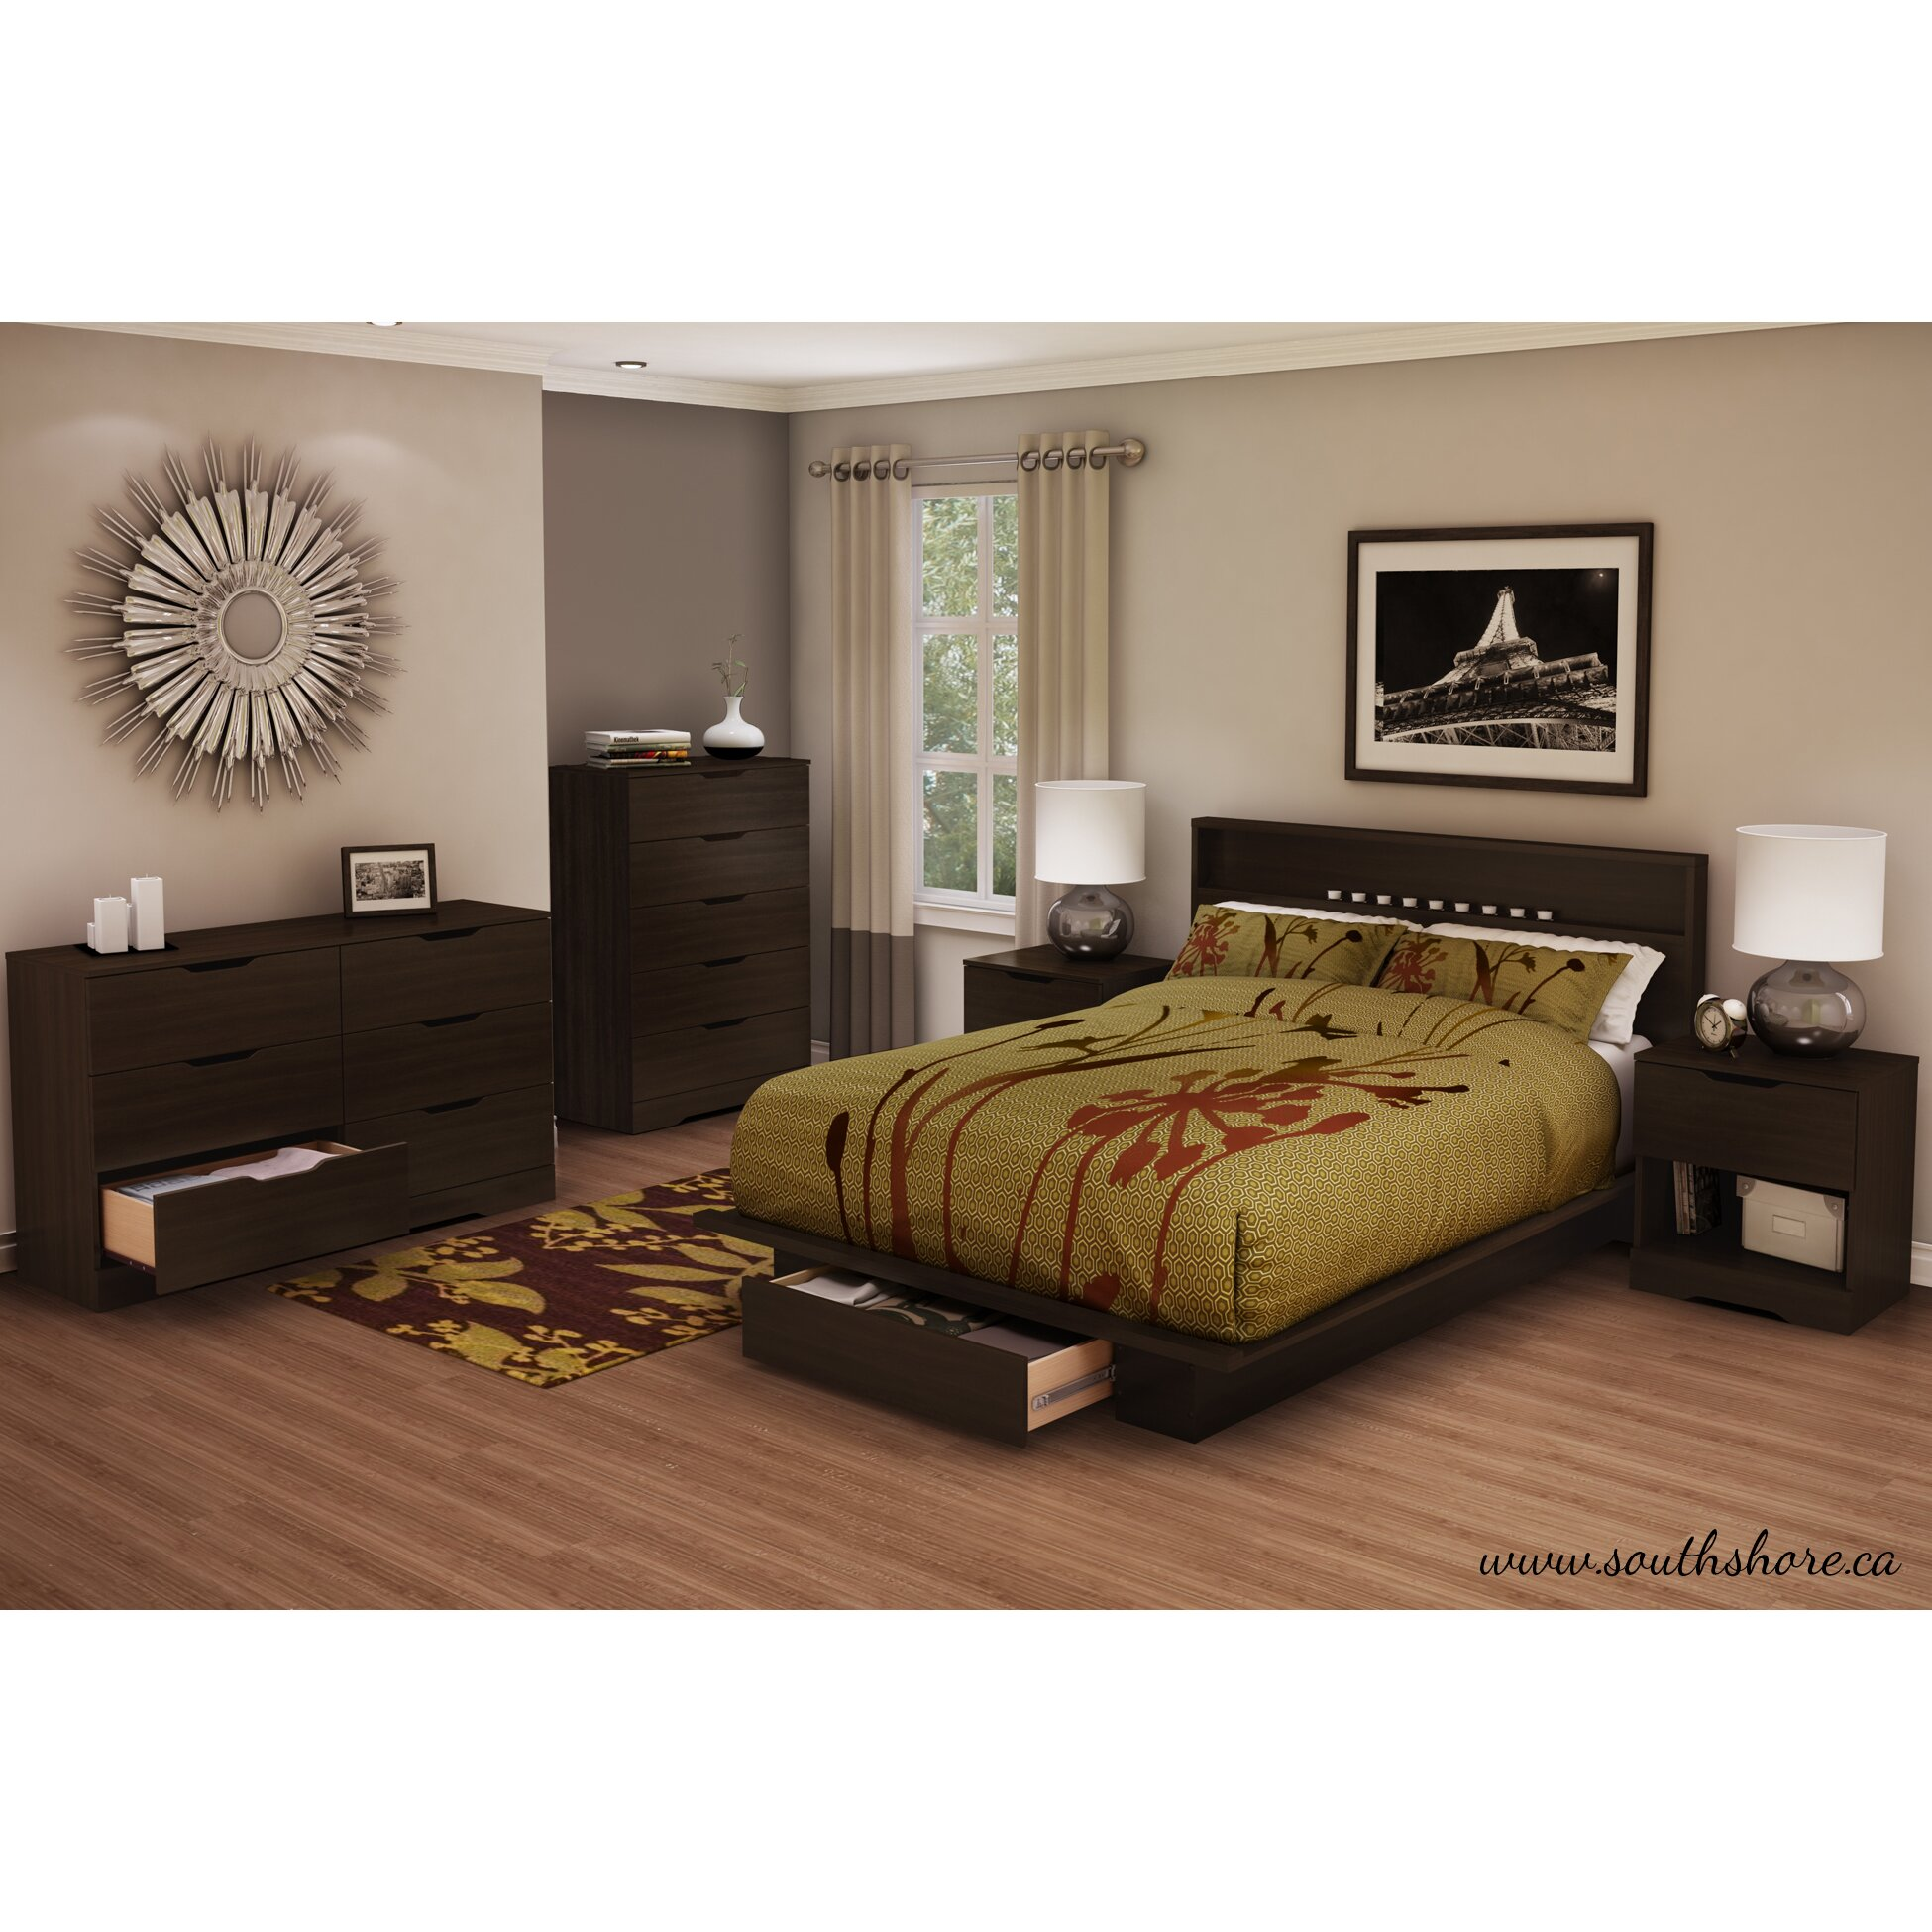 Furniture Bedroom Furniture Full Double Bedroom Sets South Shore